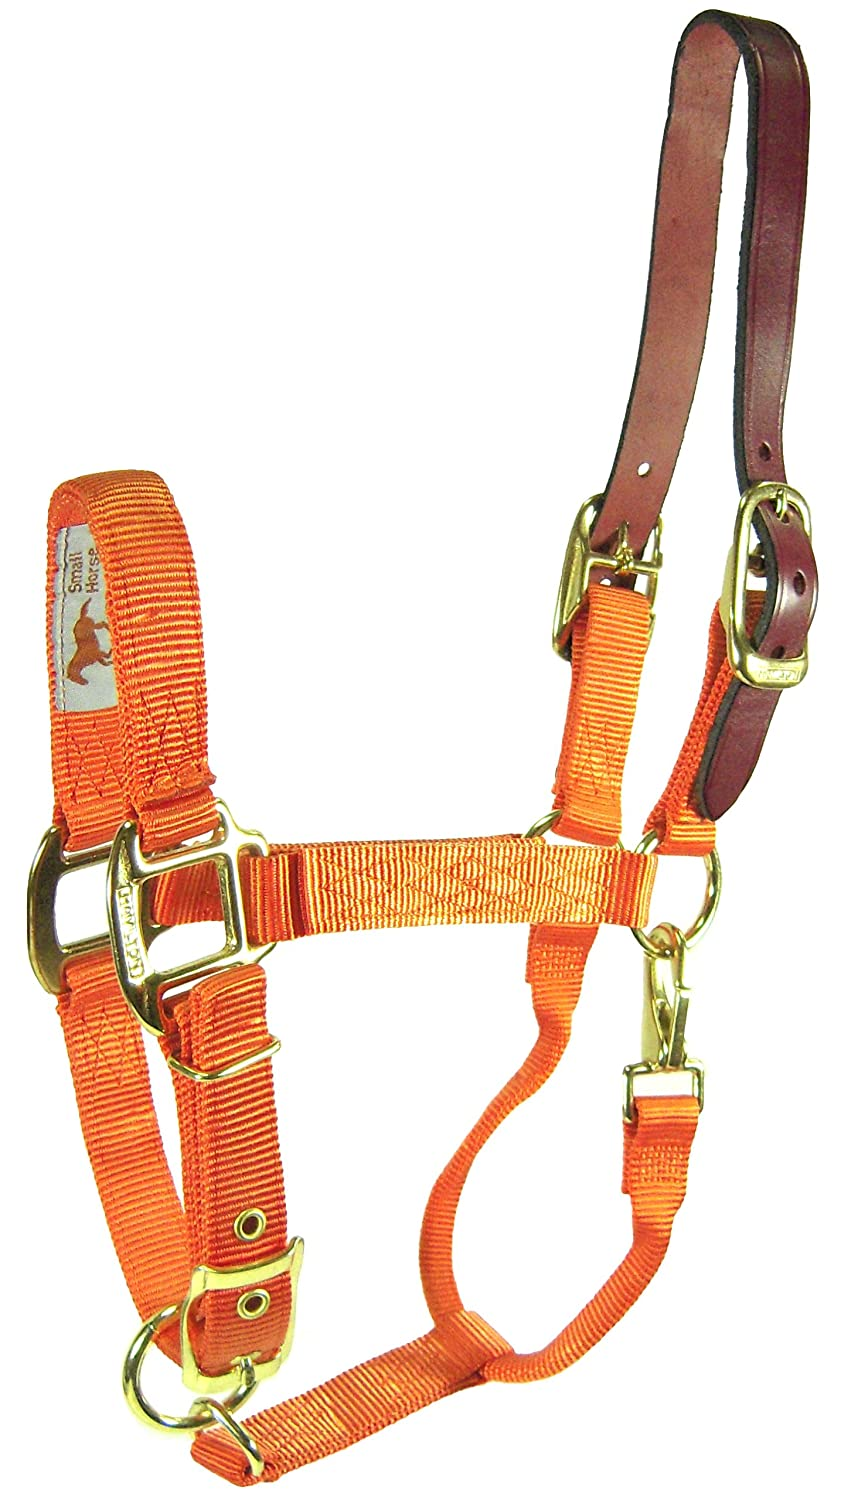 Hamilton 1-Inch Nylon Adjustable Horse Halter with Leather headpoll and Throat Snap, Yearling Size